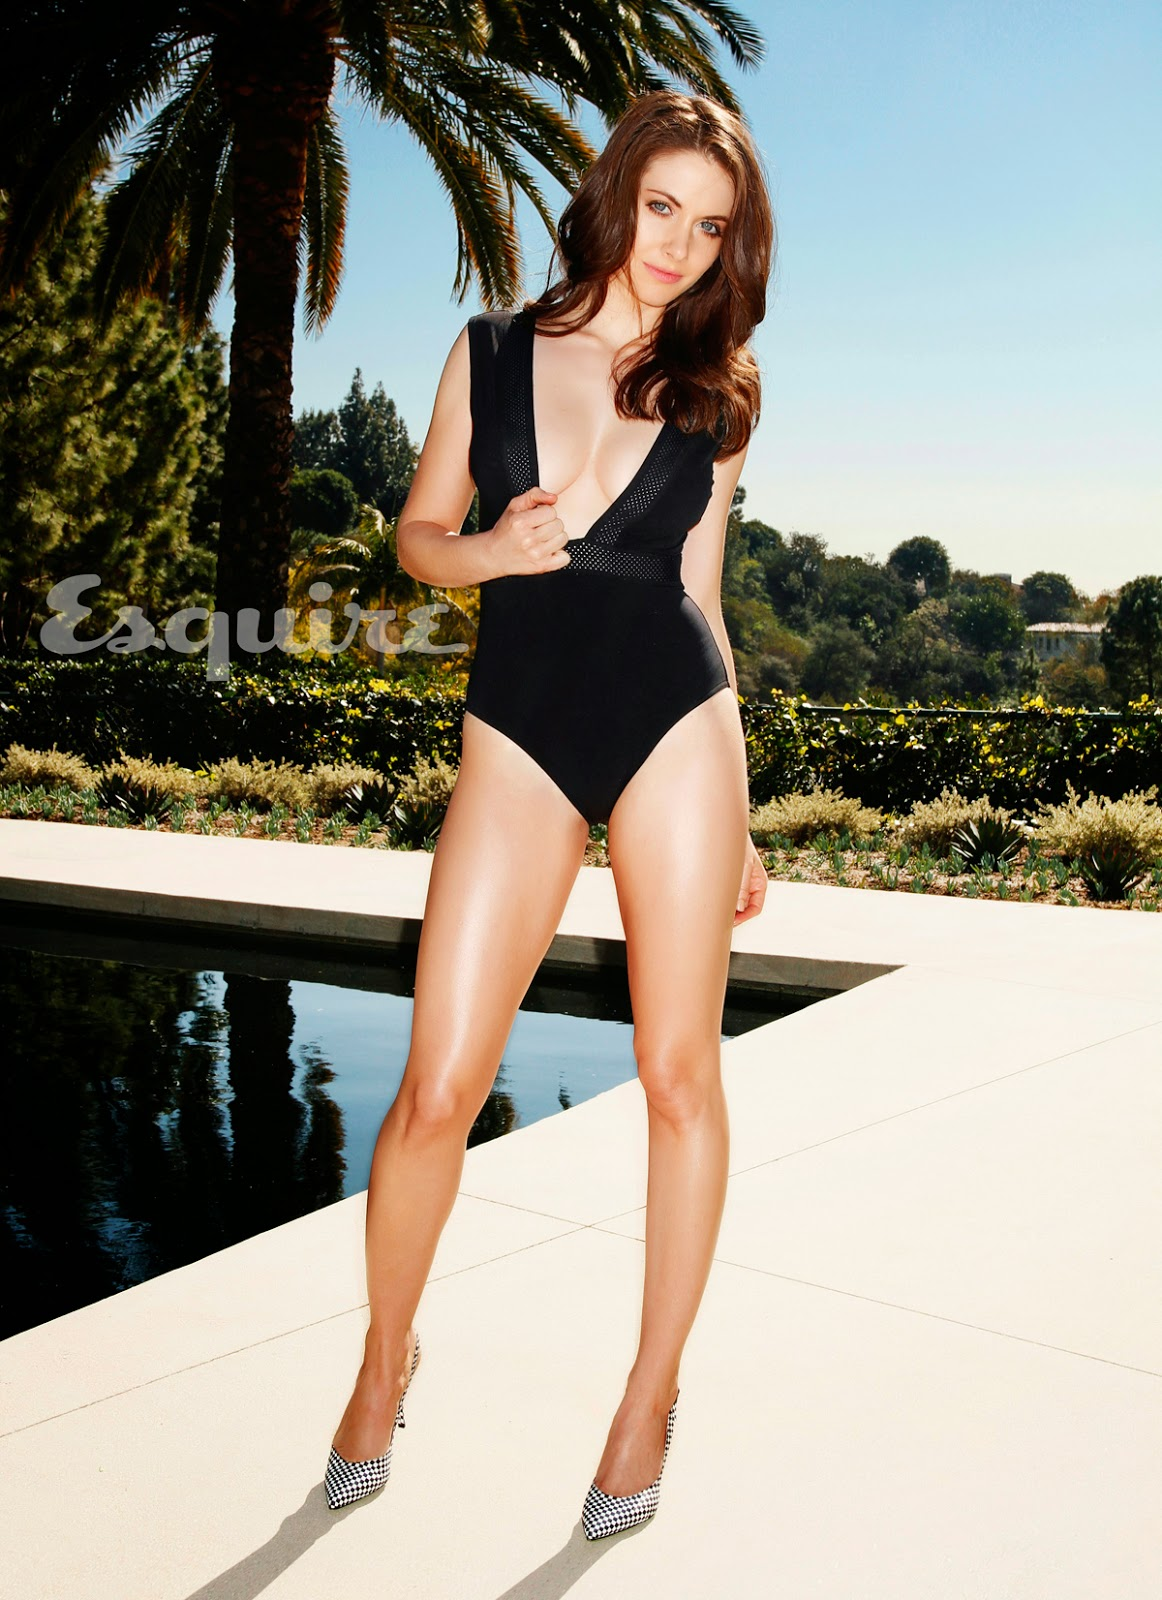 Alison Brie in an Esquire mag photoshoot